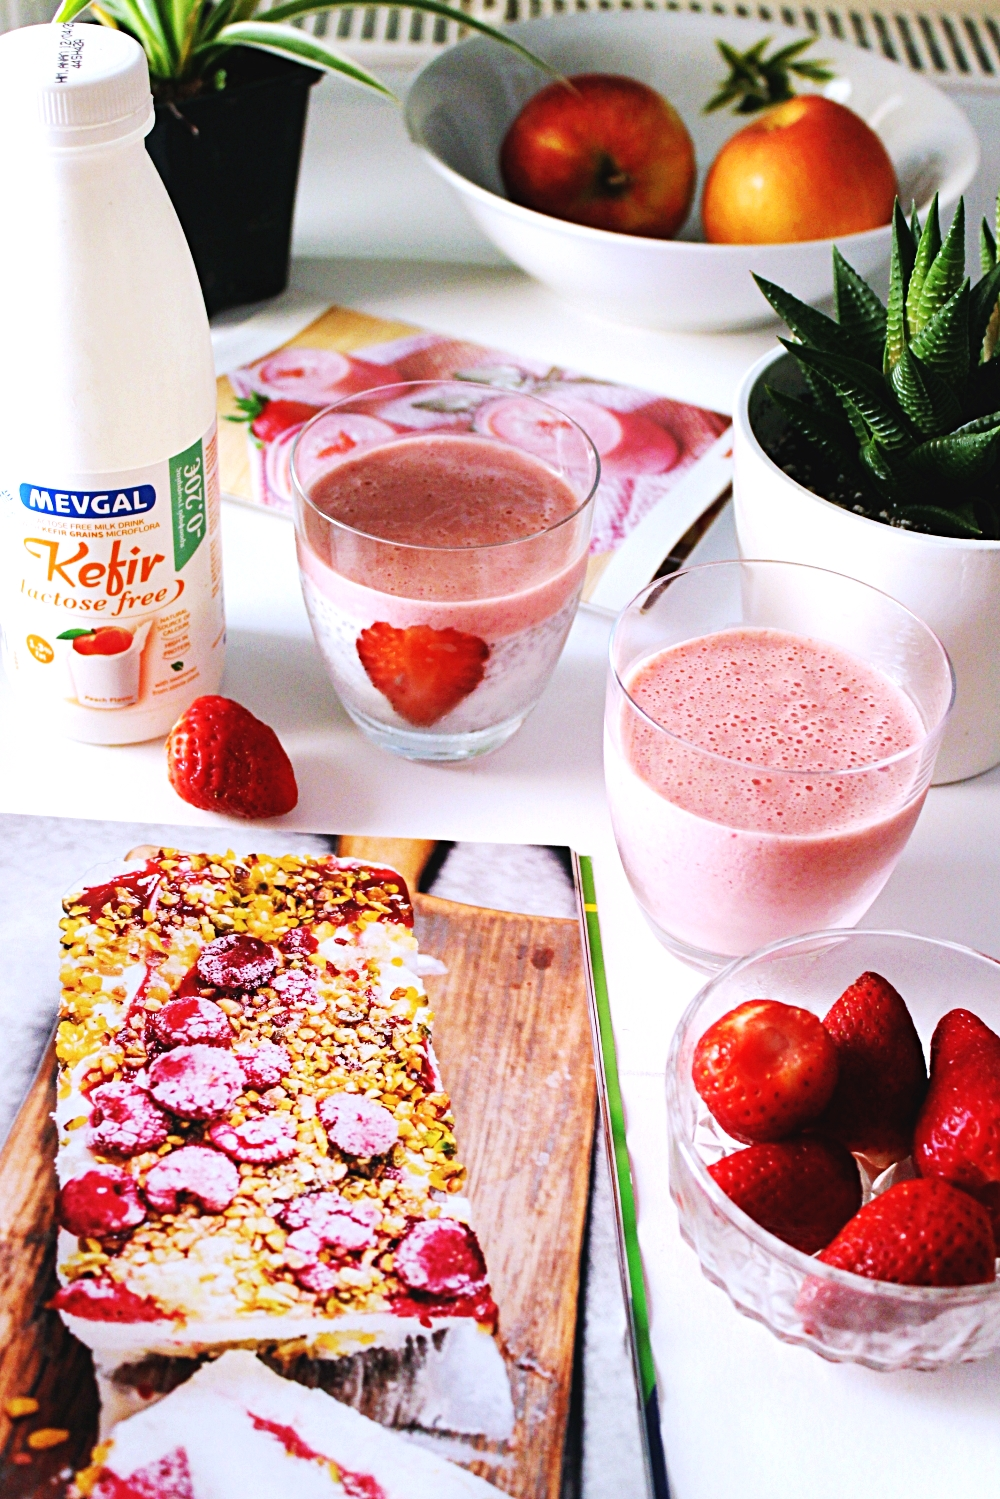 strawberry smoothie and strawberry chia pudding with Mevgal lactose-free kefir, lactose-free breakfast ideas